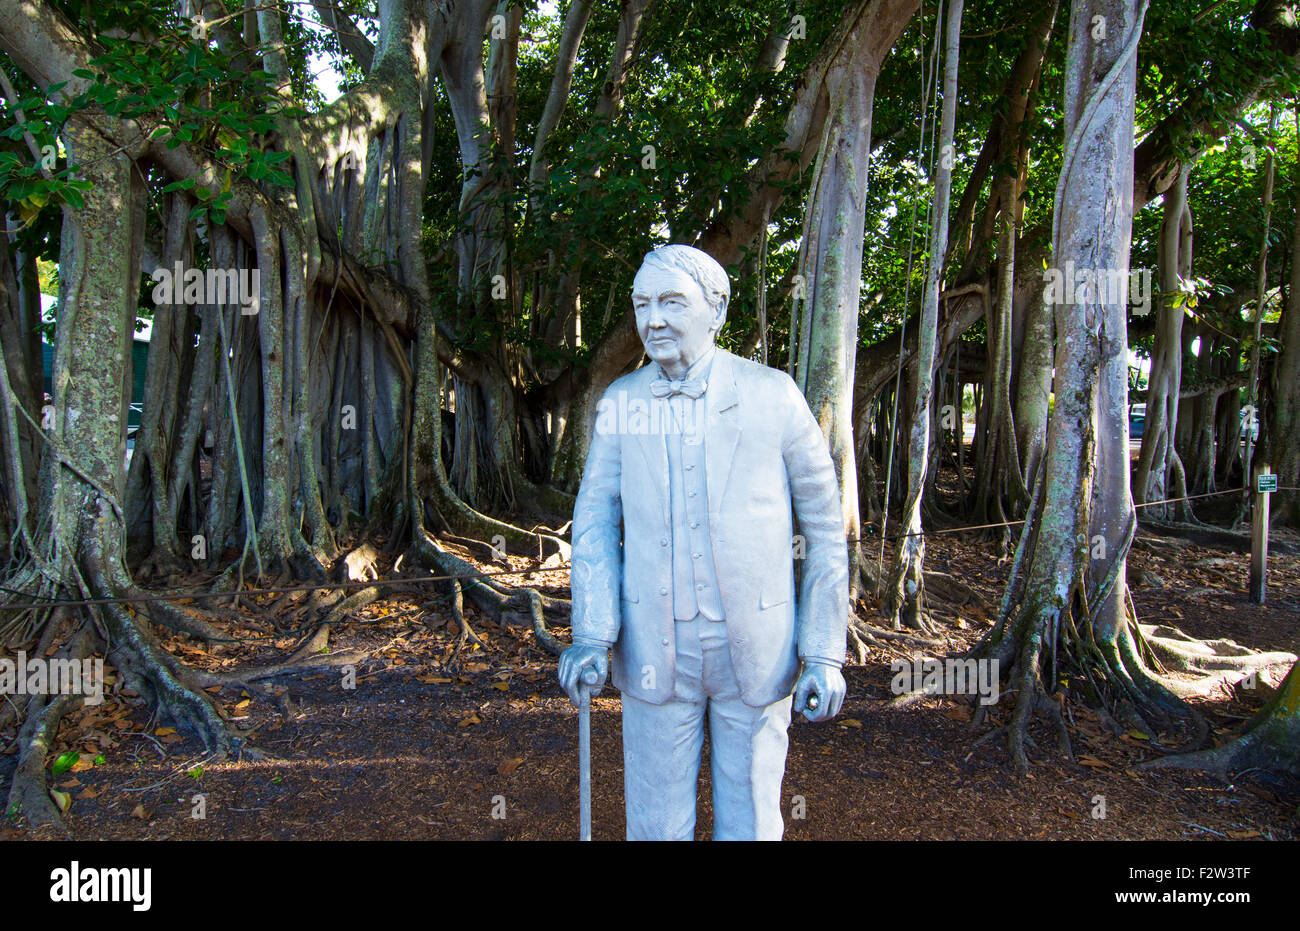 Thomas Edison inventor home and museum in Ft Myers Florida statue of man - Stock Image